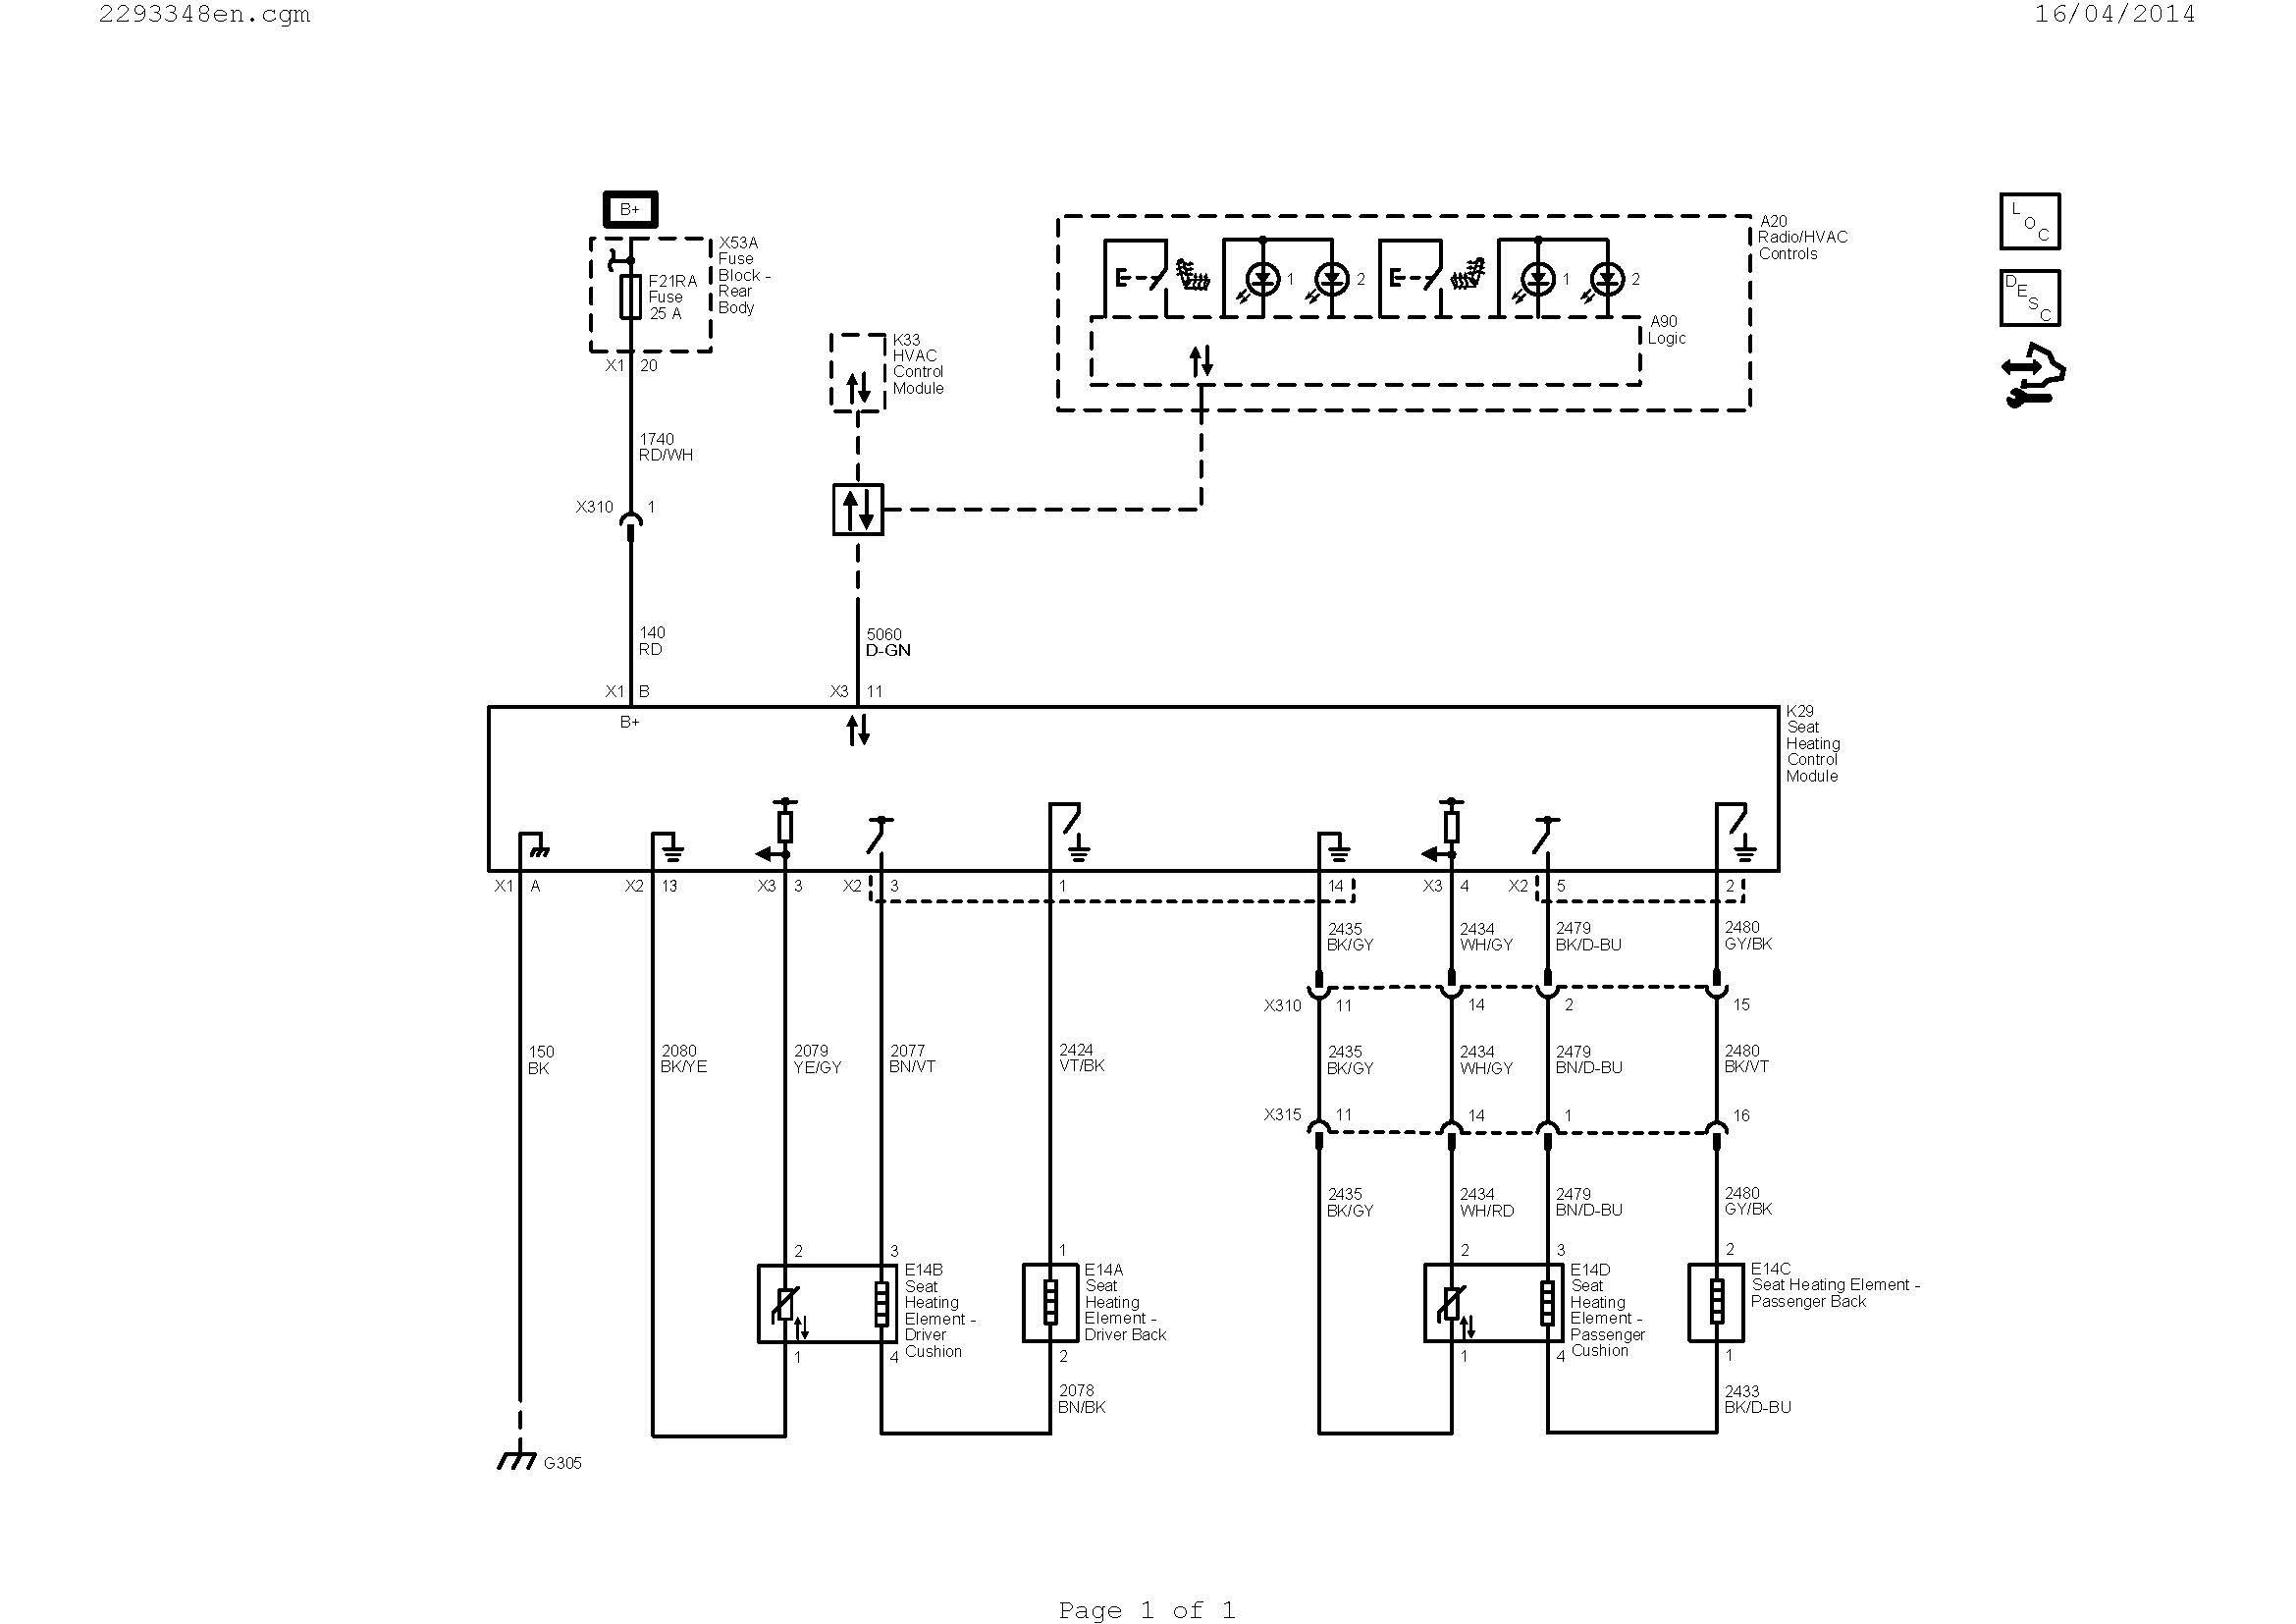 nmb mat 4715kl 04w b56 wiring diagram Download-relay wiring diagram Collection Wiring Diagram For A Relay Switch Save Wiring Diagram Ac Valid DOWNLOAD Wiring Diagram 5-o